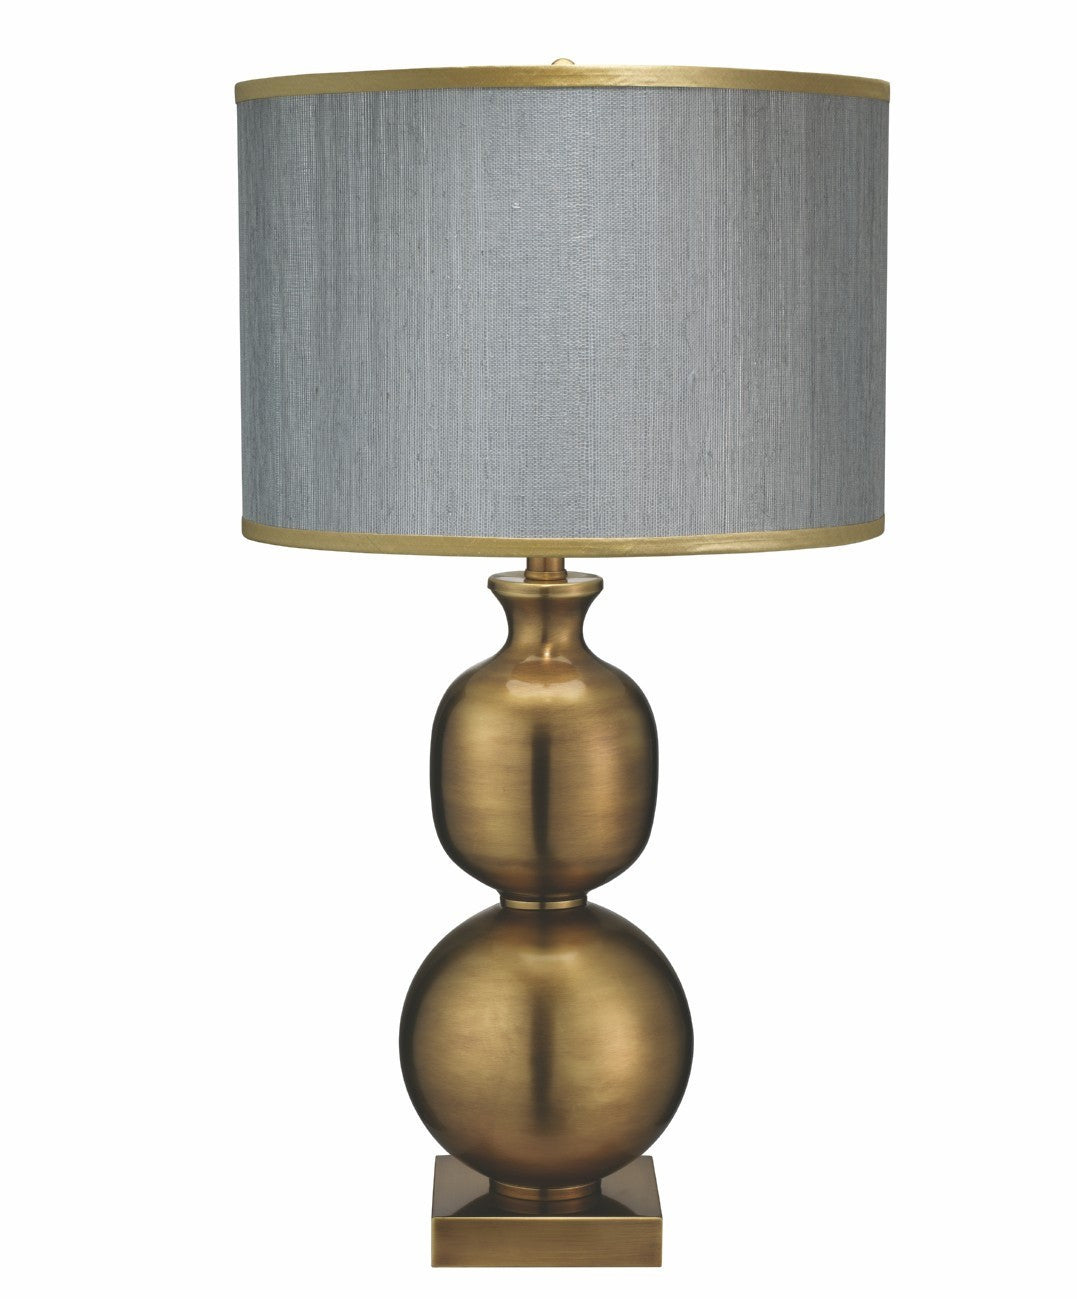 jamie young double ball table lamp huff harrington